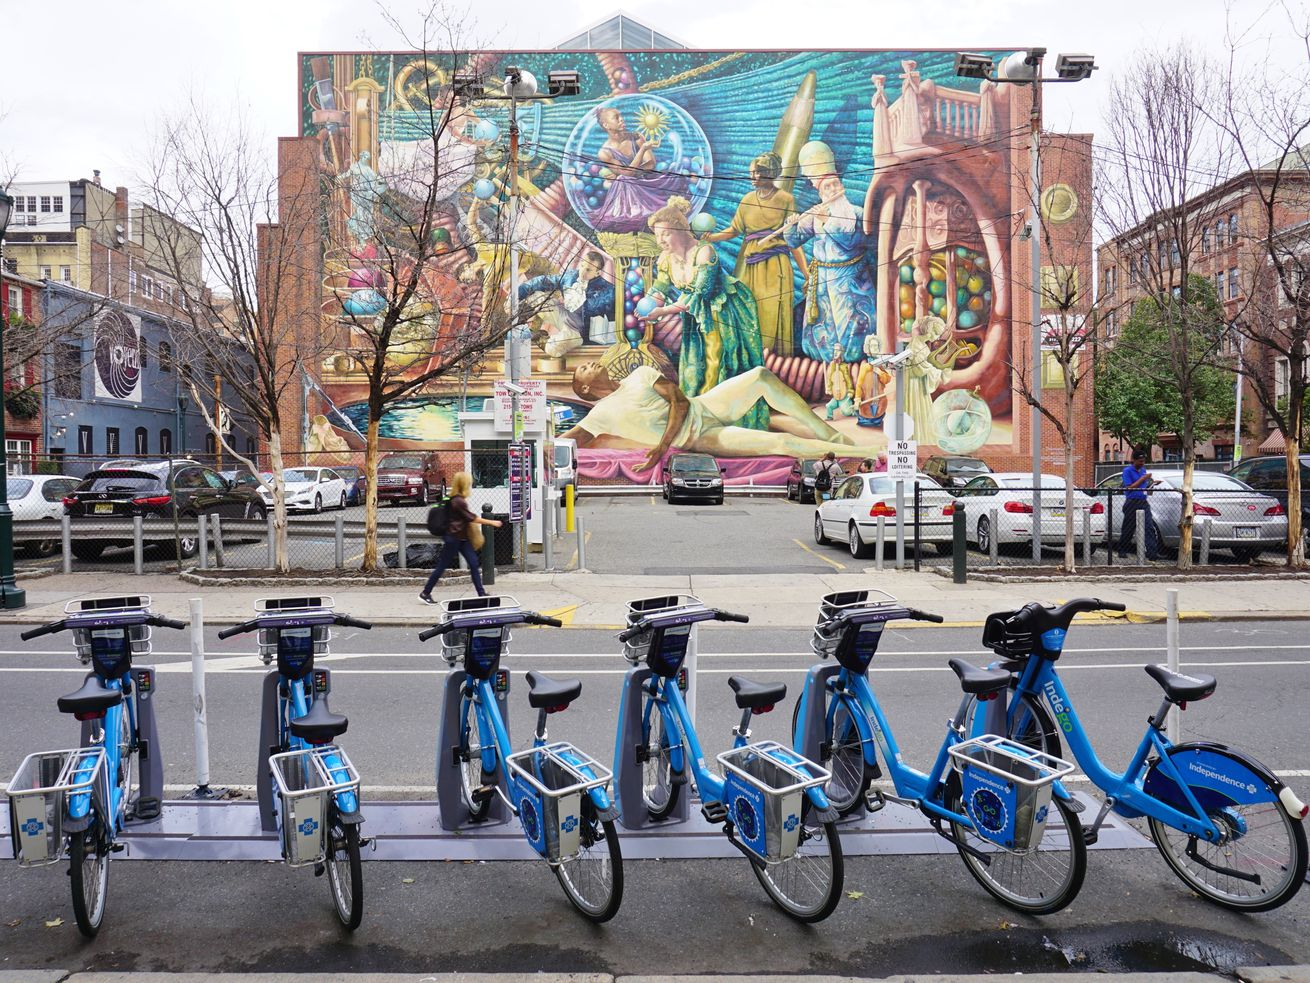 The Indego bikeshare system in Philadelphia has made rider equity a focus of expansion over the years.